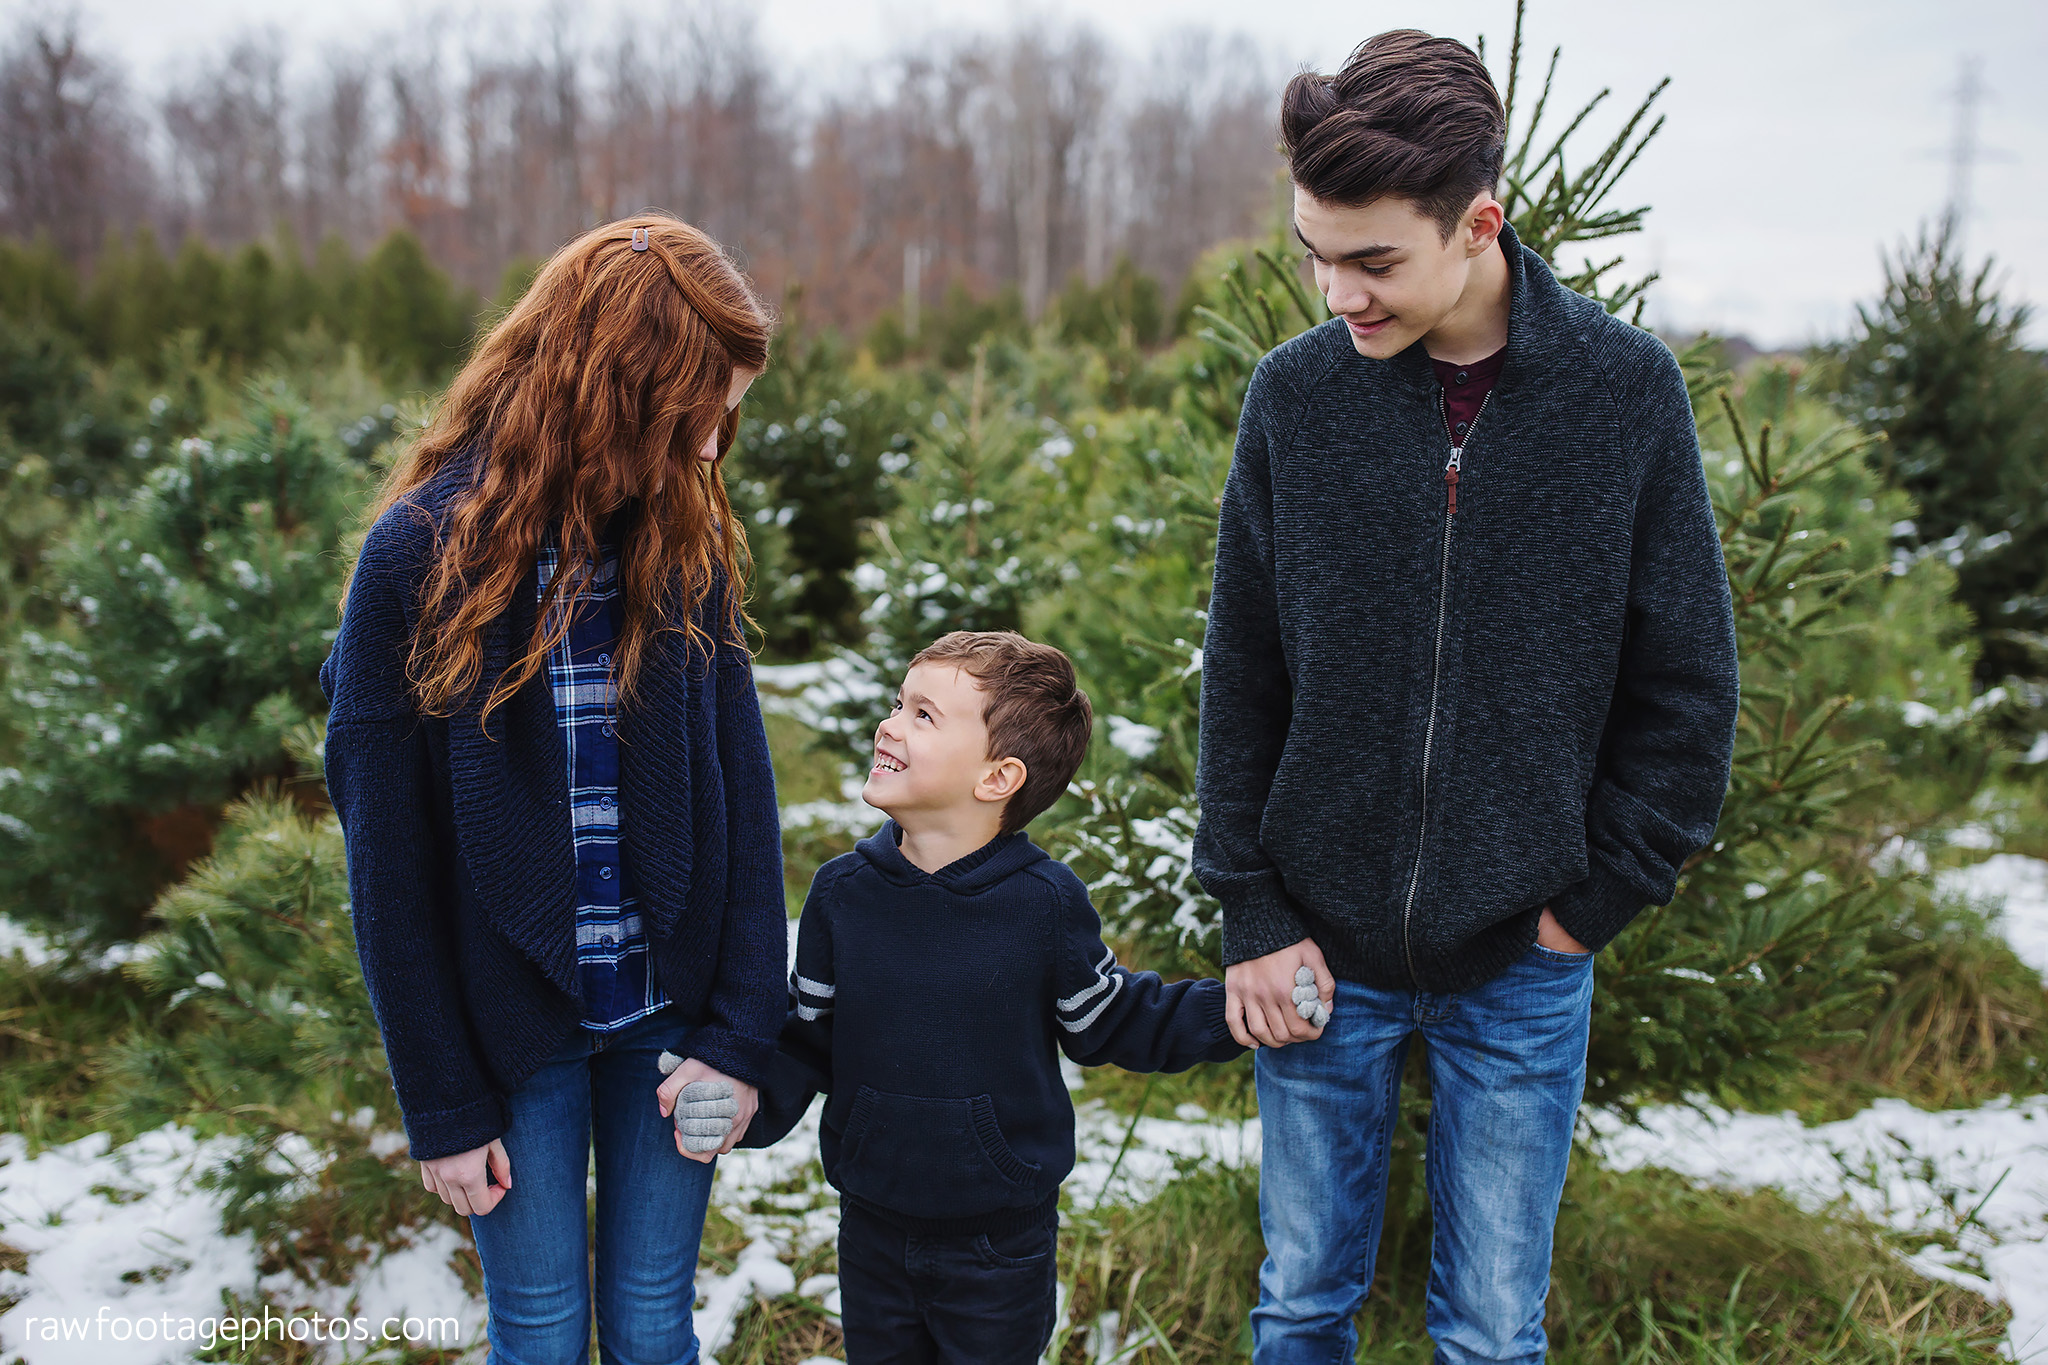 london_ontario_family_photographer-raw_footage_photography-tree_farm_minis-christmas_sessions-winter0021.jpg